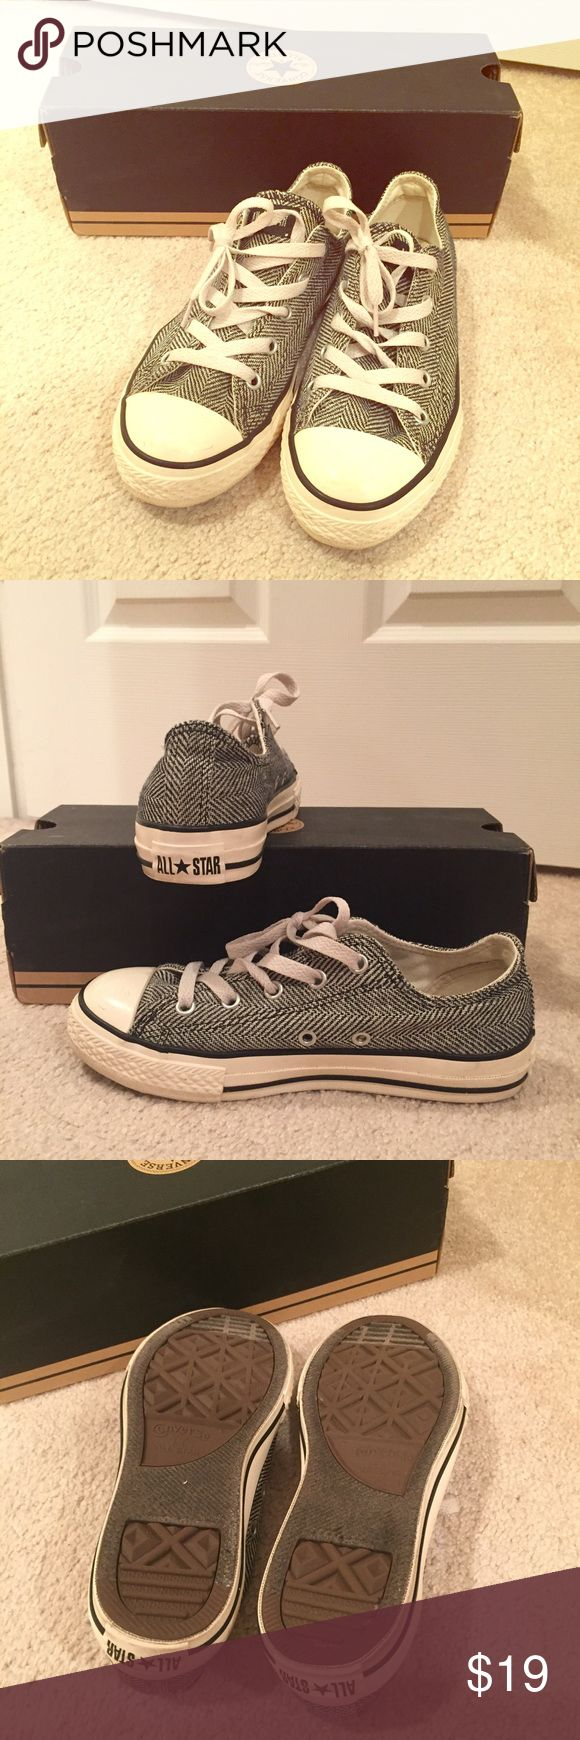 ‼️SALE‼️ Chuck Taylor All Star Converse Gently used unique design All Star Converse Kids shoe size 2 (fits same as women's size  5.5) Converse Shoes Sneakers